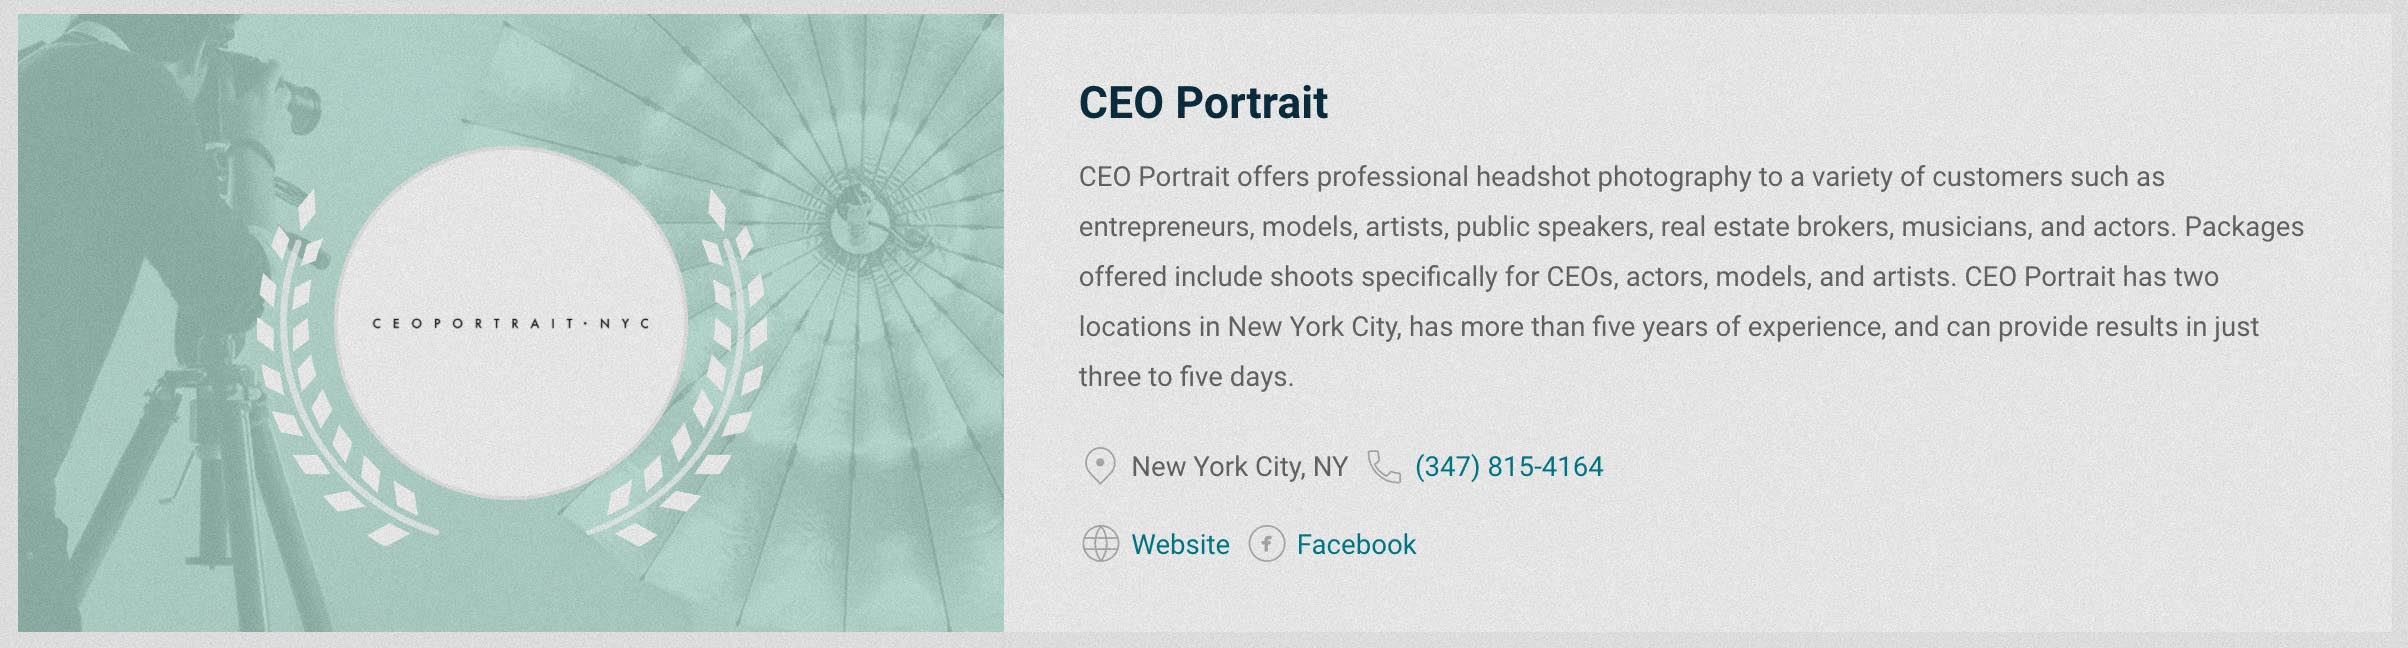 CEO Portrait by expertise.jpg